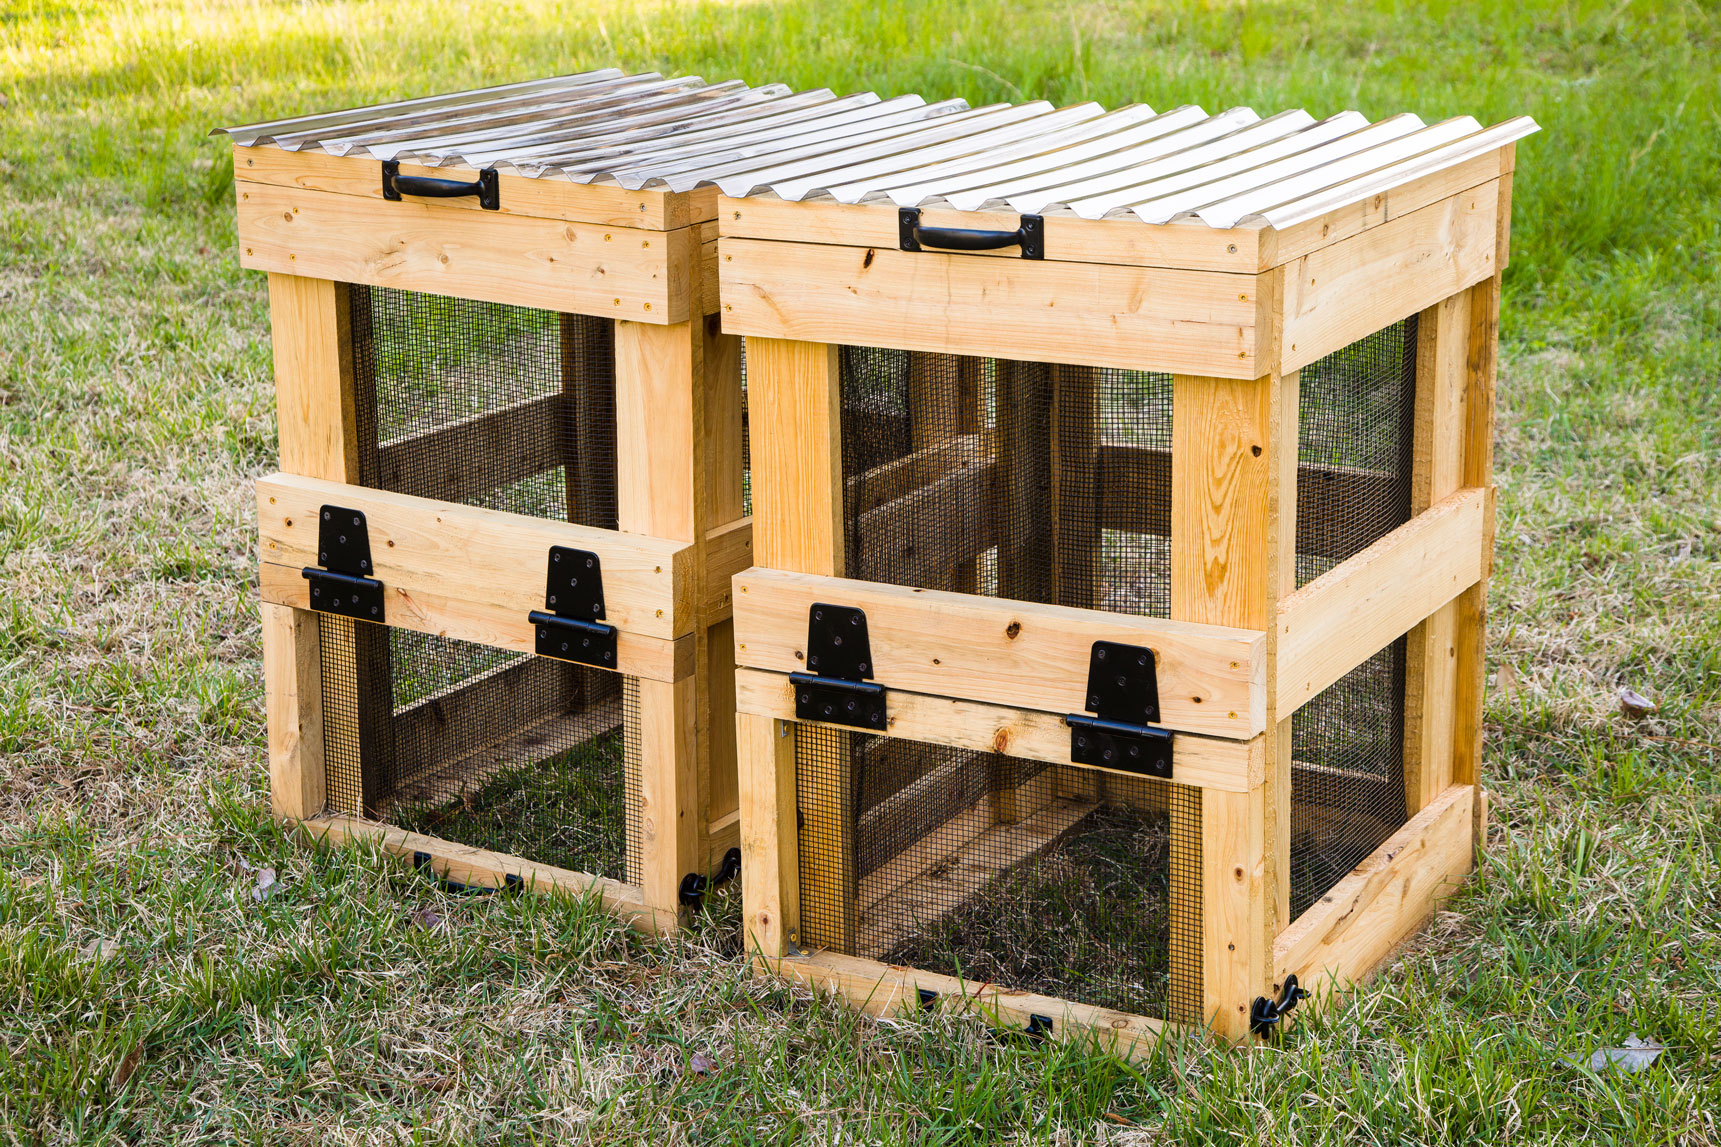 Completed DIY Compost Bins